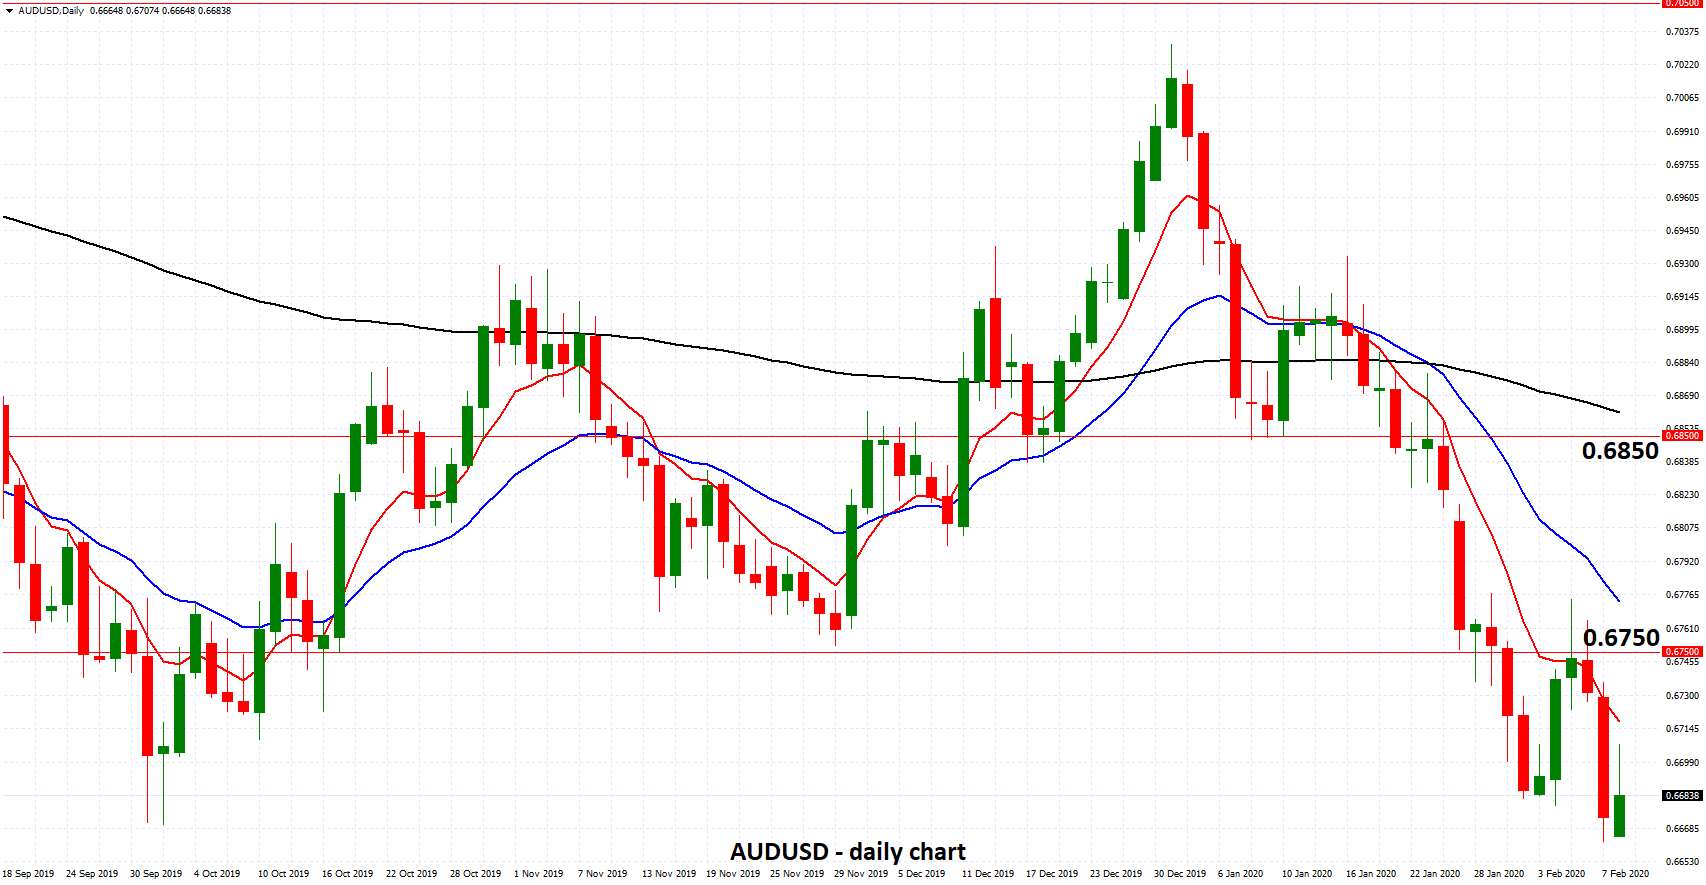 AUDUSD - Drops to Ten Year Low Below 0.67 after RBA Holds Rates